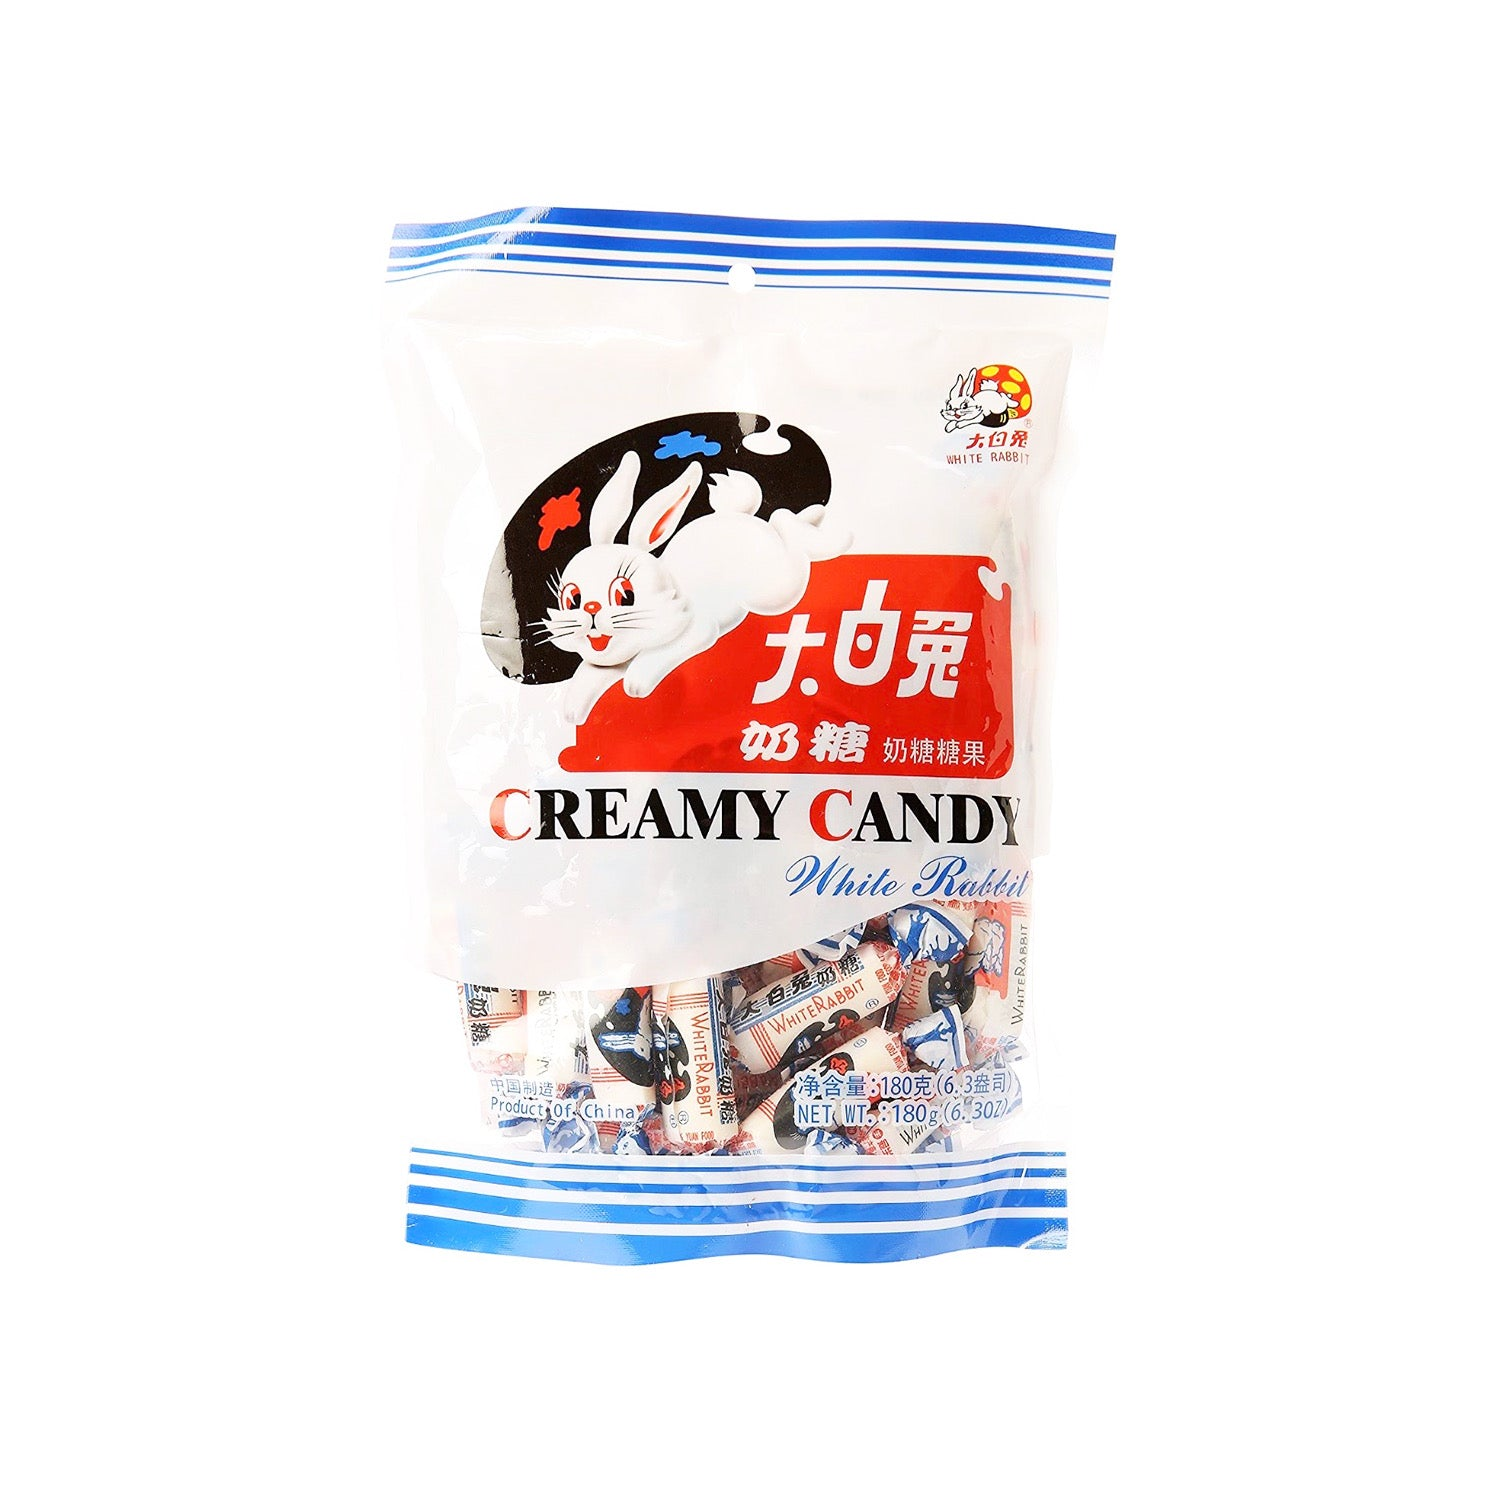 White Rabbit Creamy Candy 大白兔奶糖